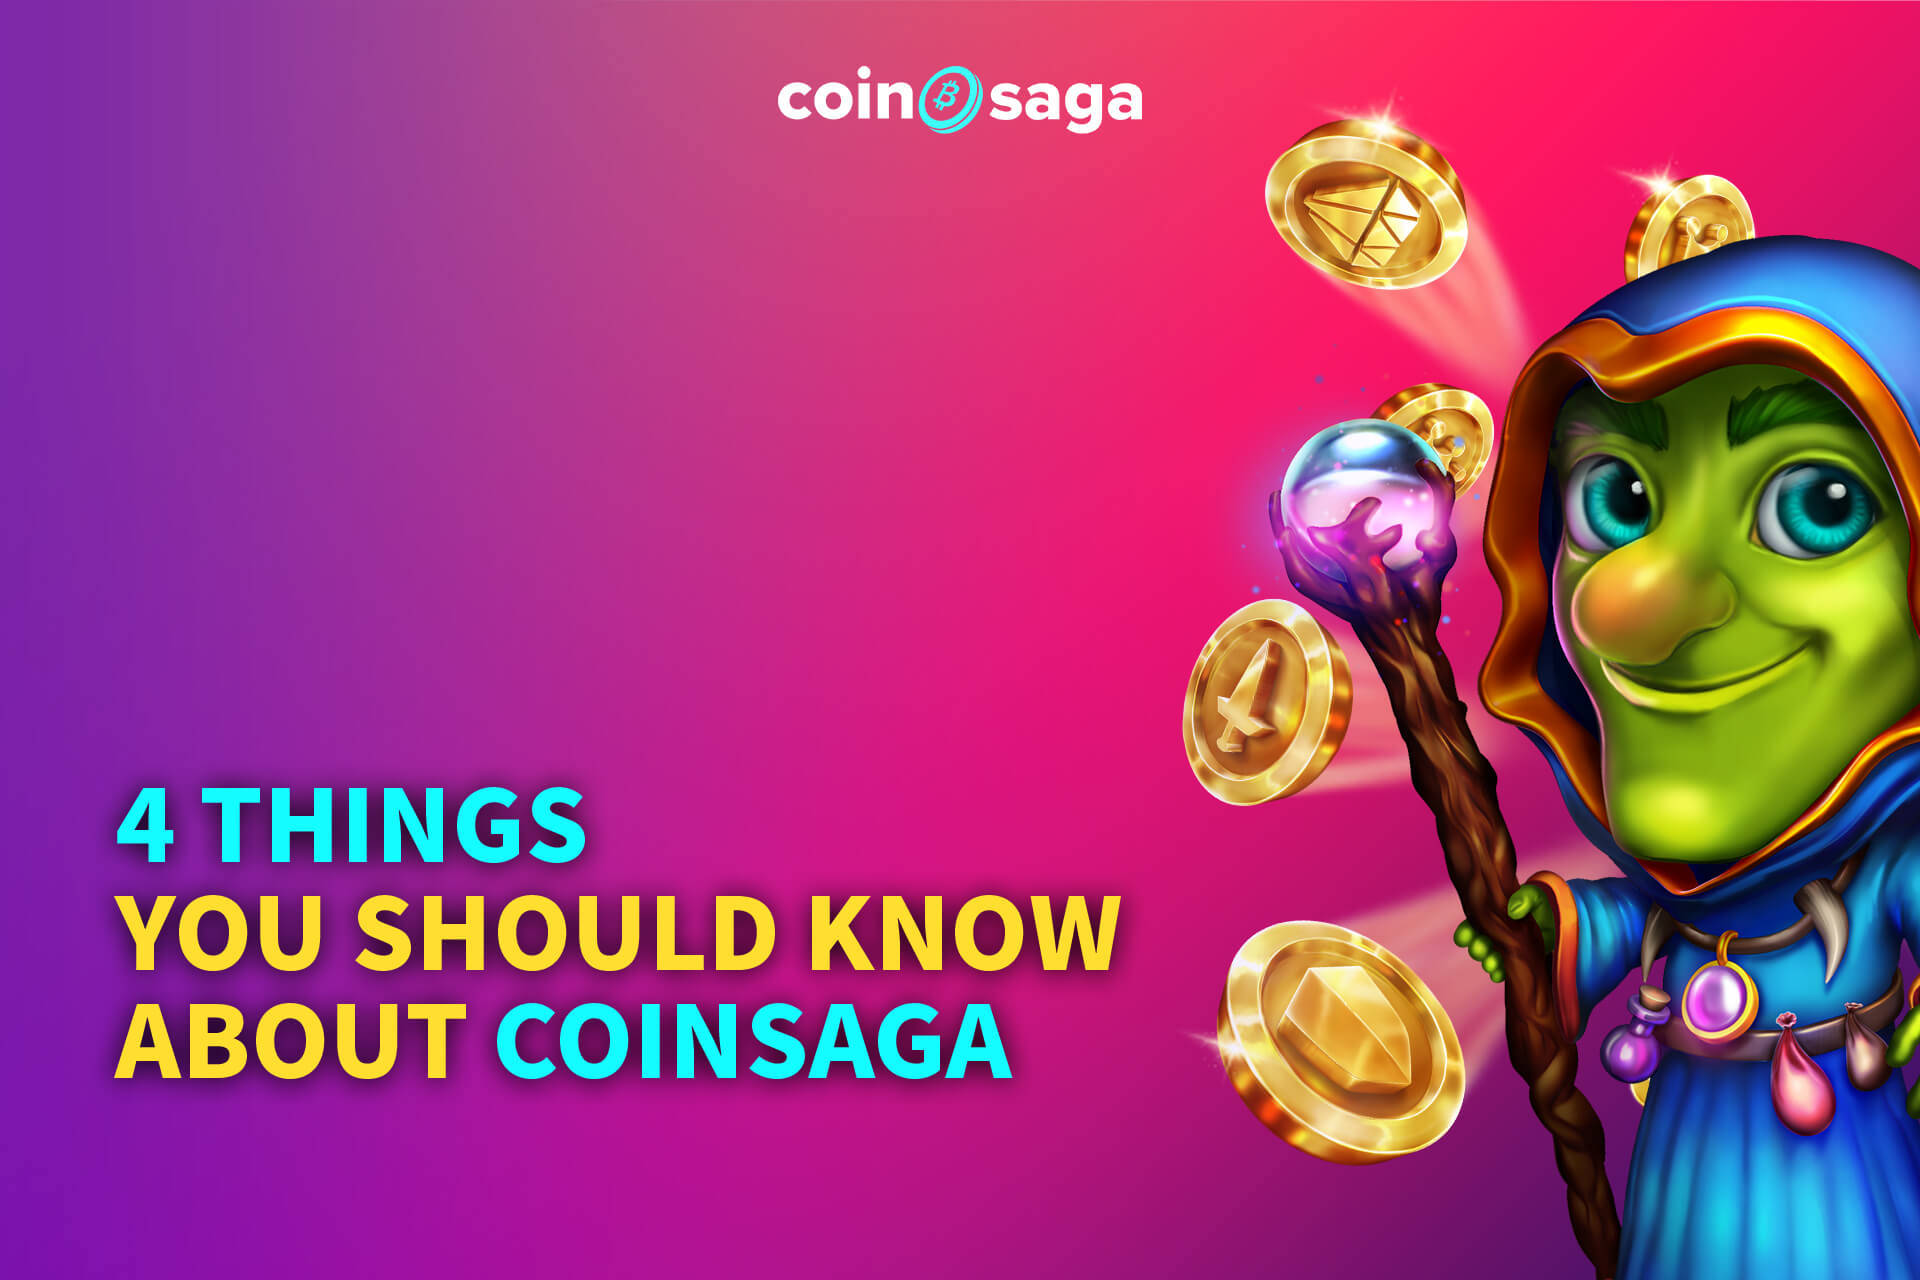 Tips about CoinSaga